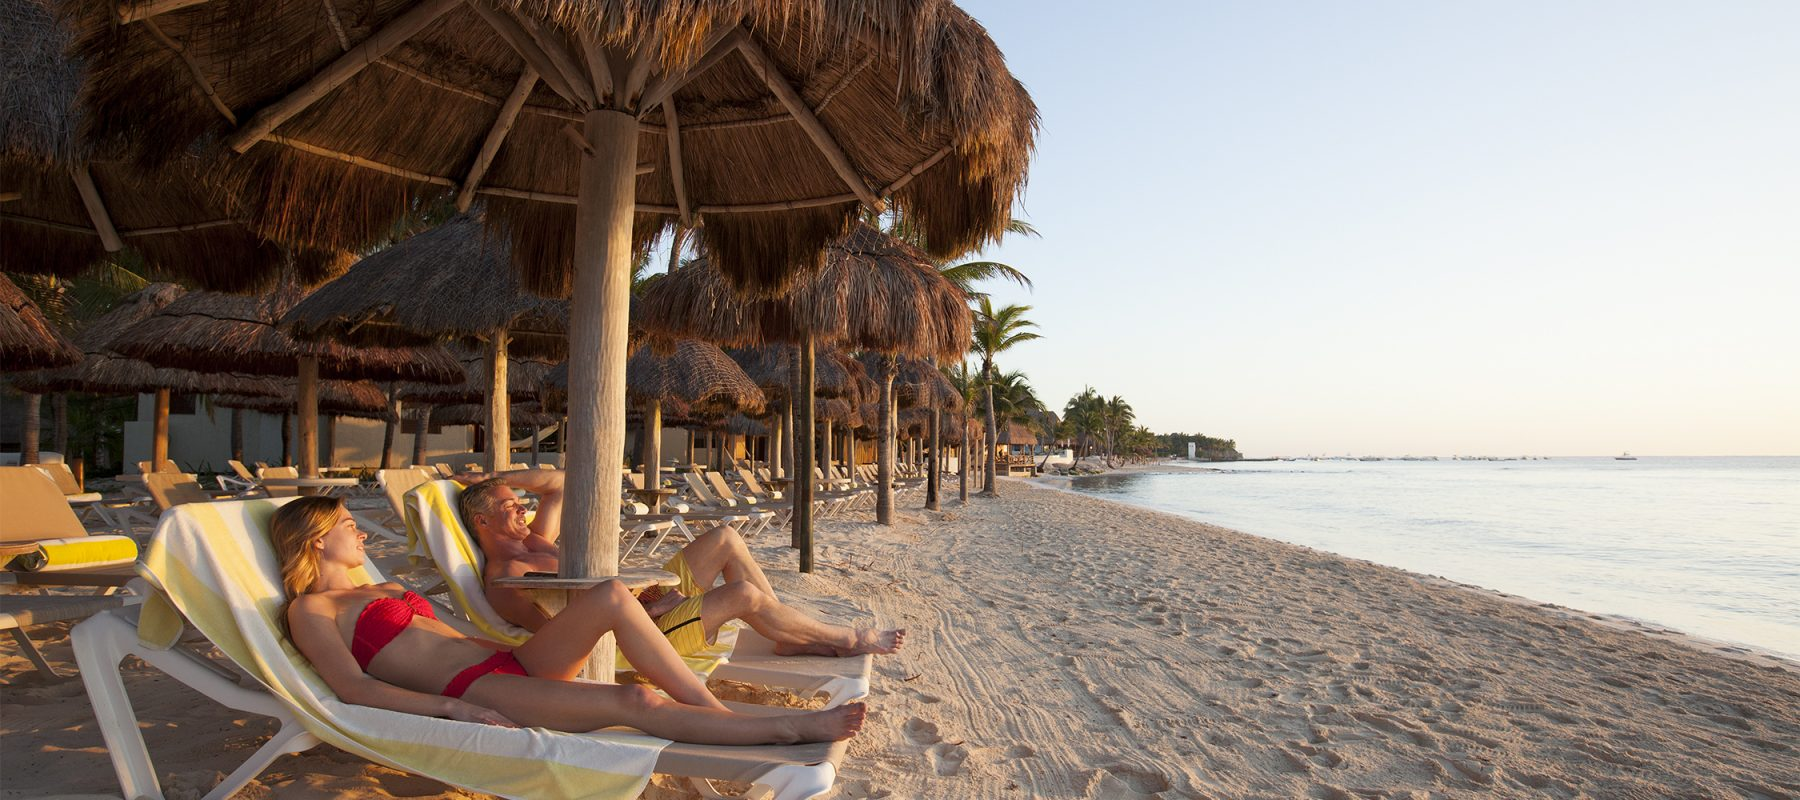 Sunbathe along Playa del Carmen's largest stretch of beach at Mahekal Beach Resort